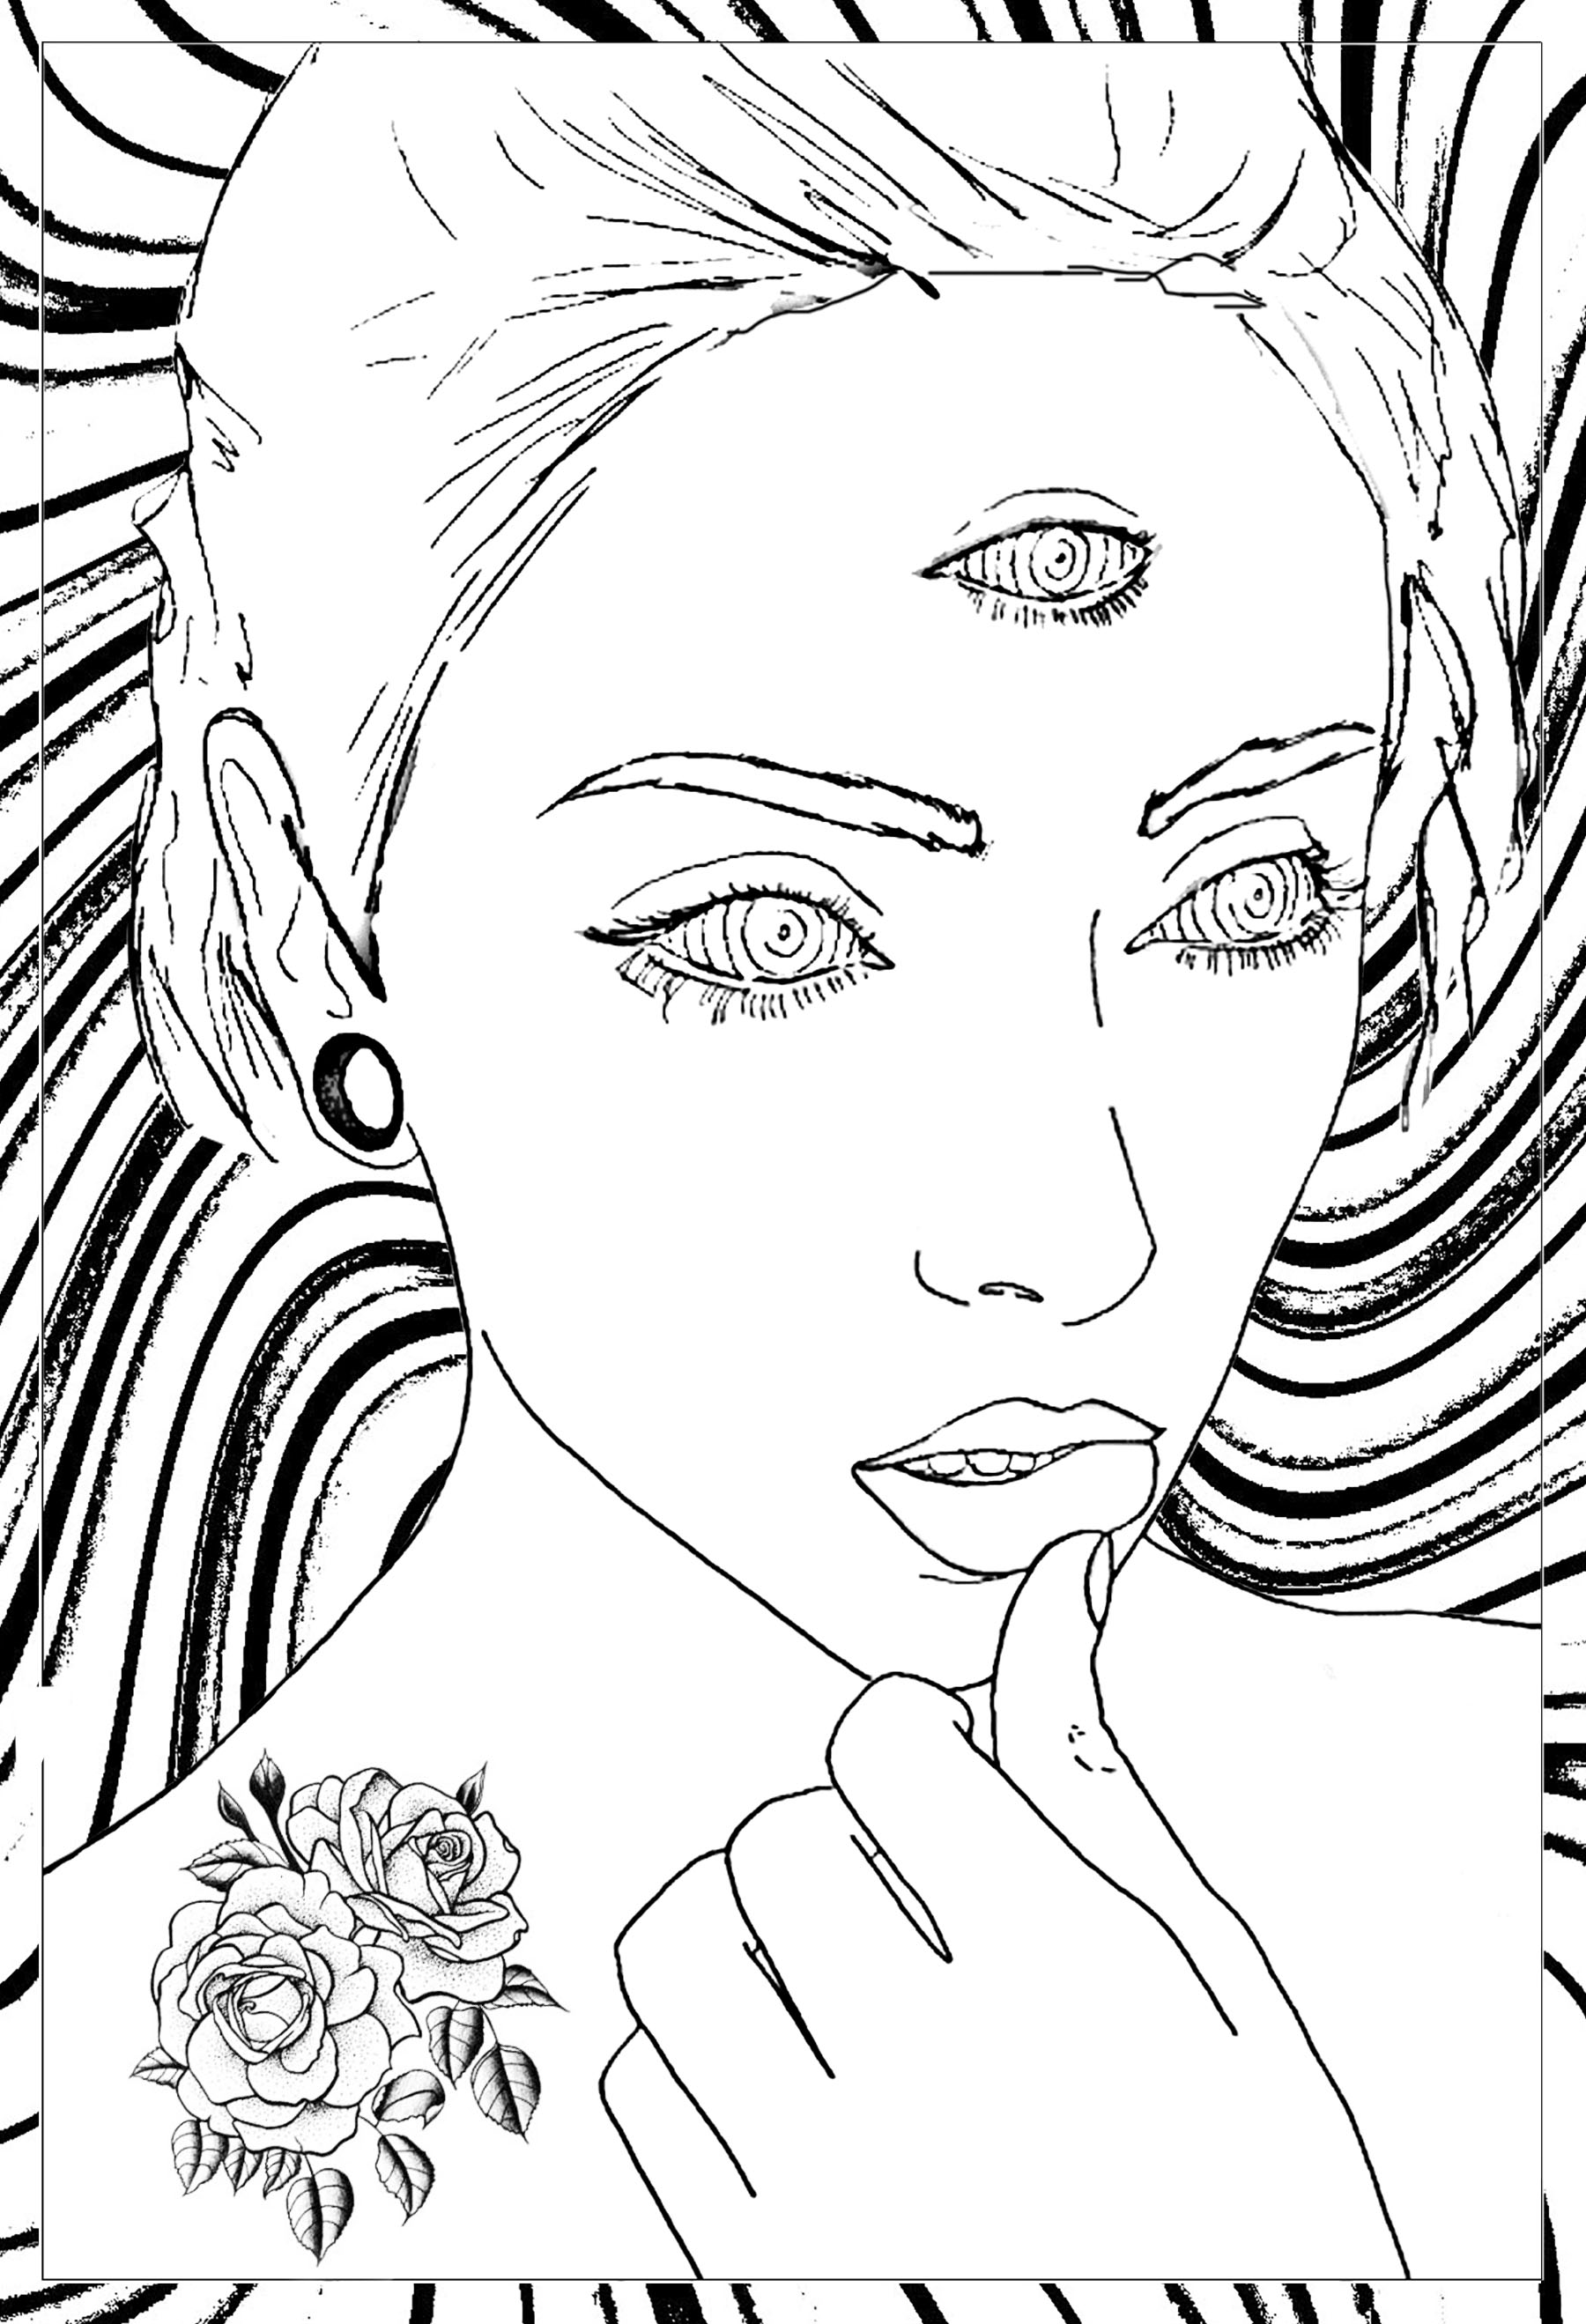 Full Page Coloring Pages For Adults At Getcolorings